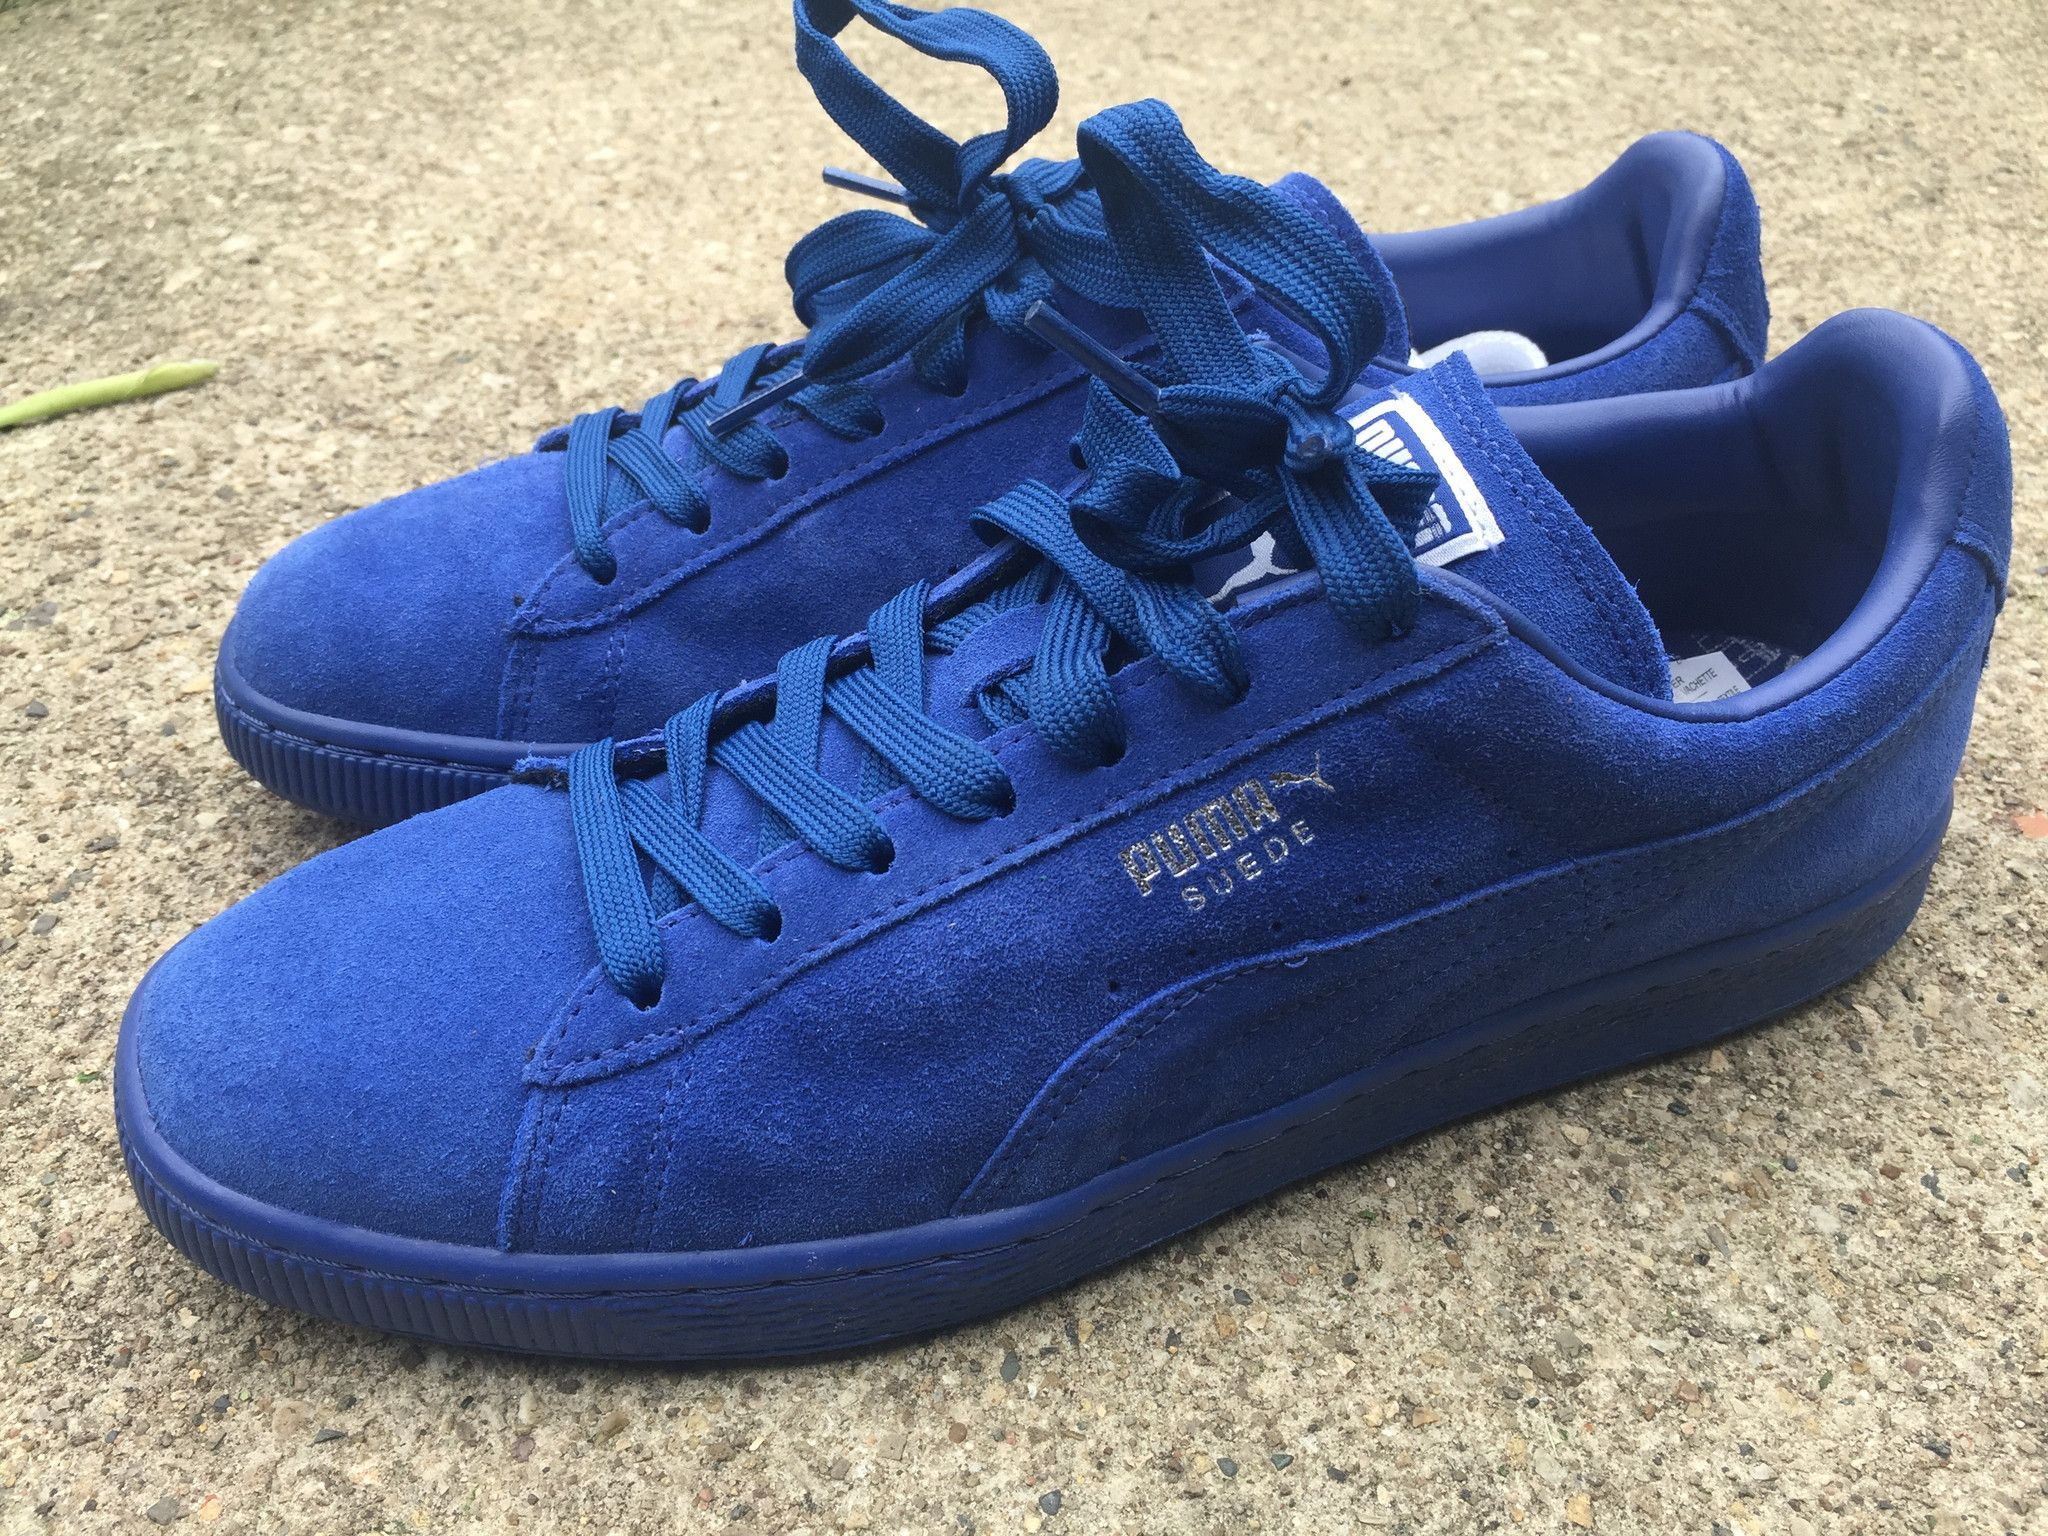 separation shoes d3e3d 21a39 Puma Suede Classic Iced Royal Blue Sz. 9.5 | puma suede ...